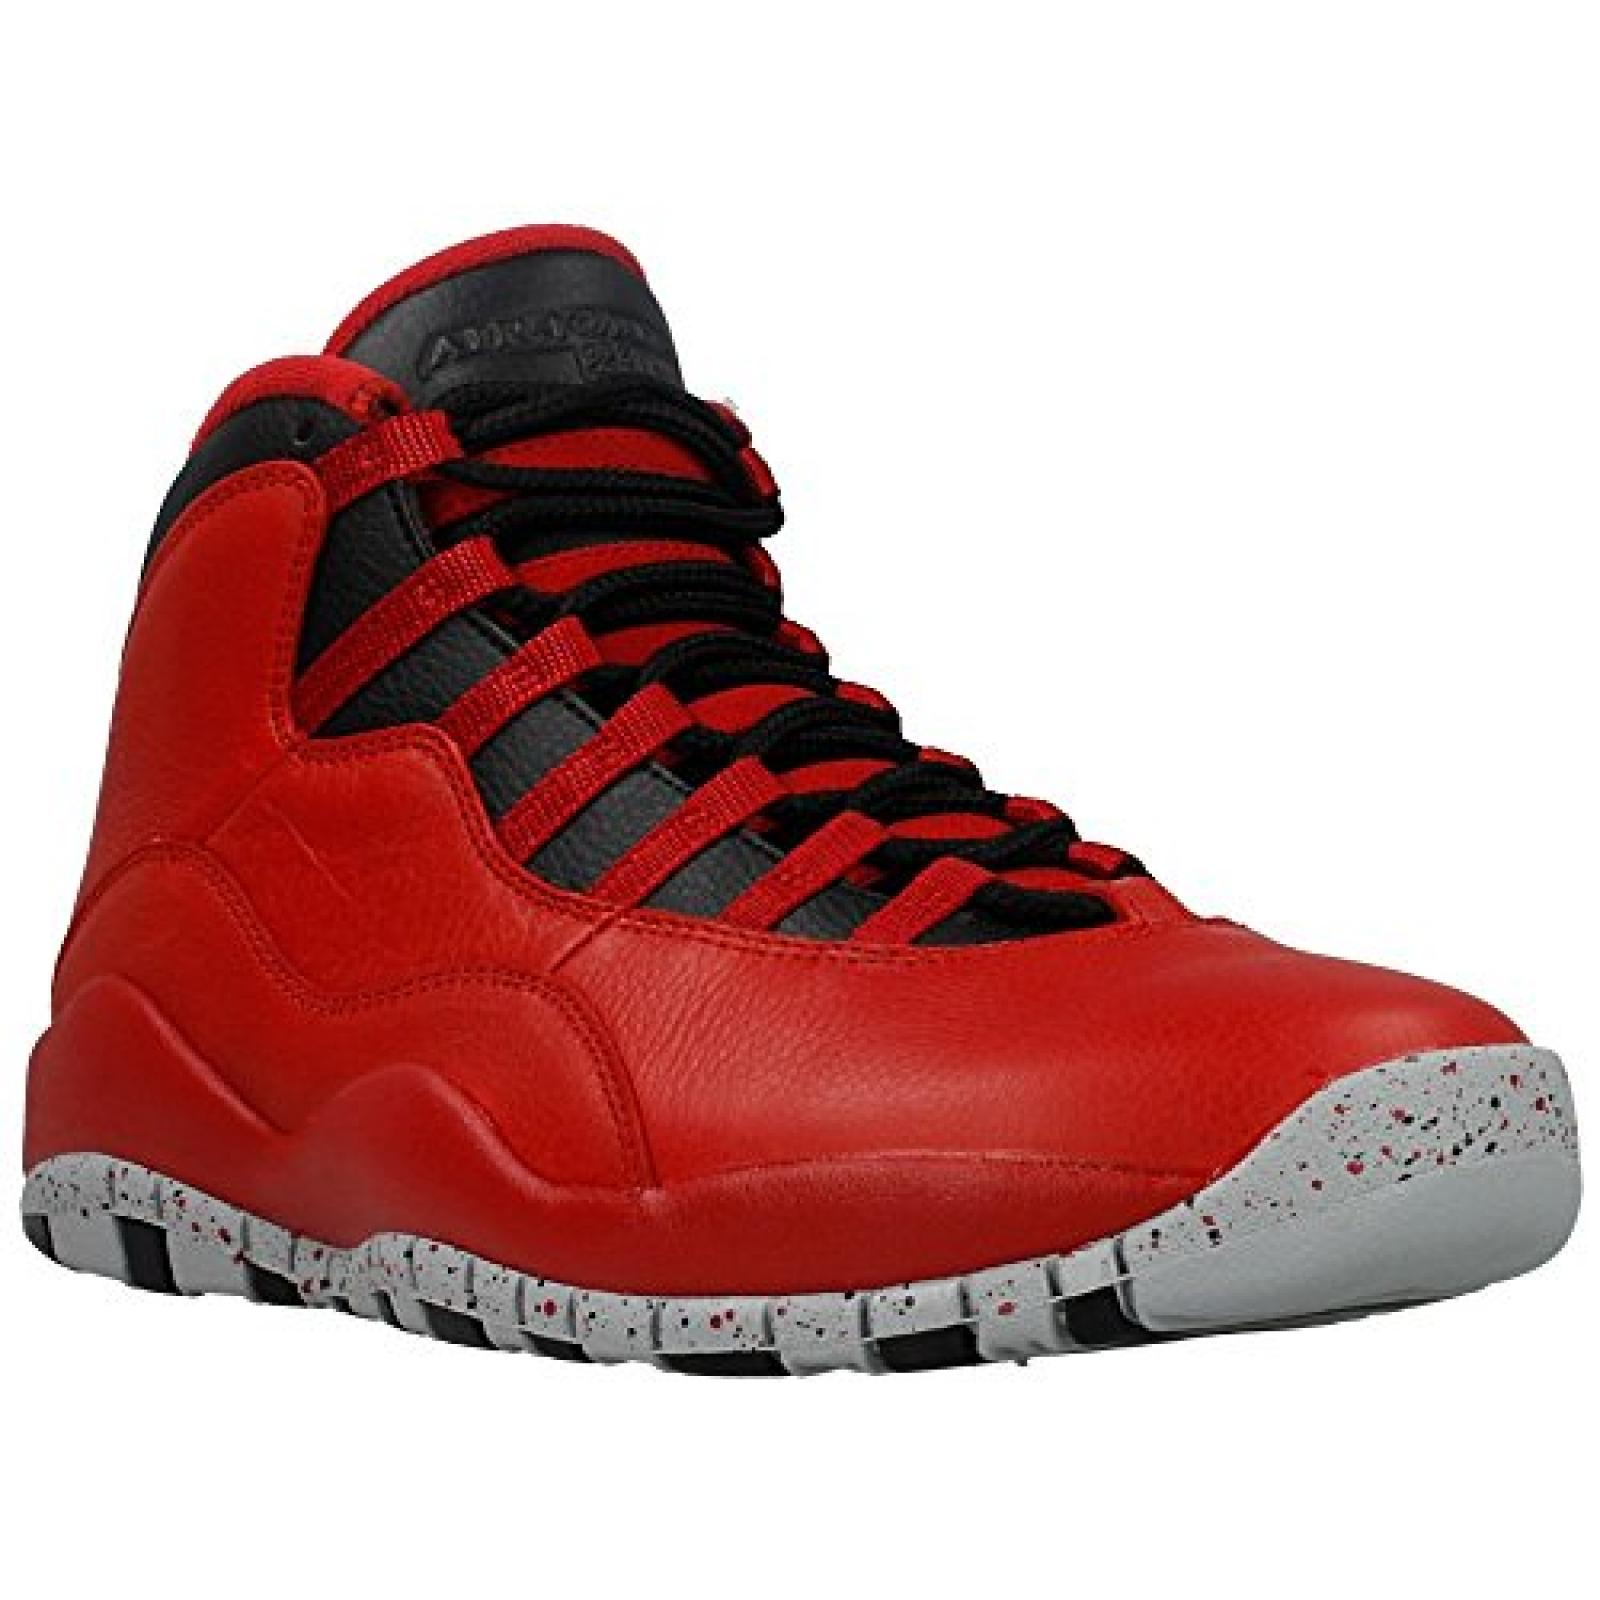 Nike - Air Jordan 10 Retro 30TH